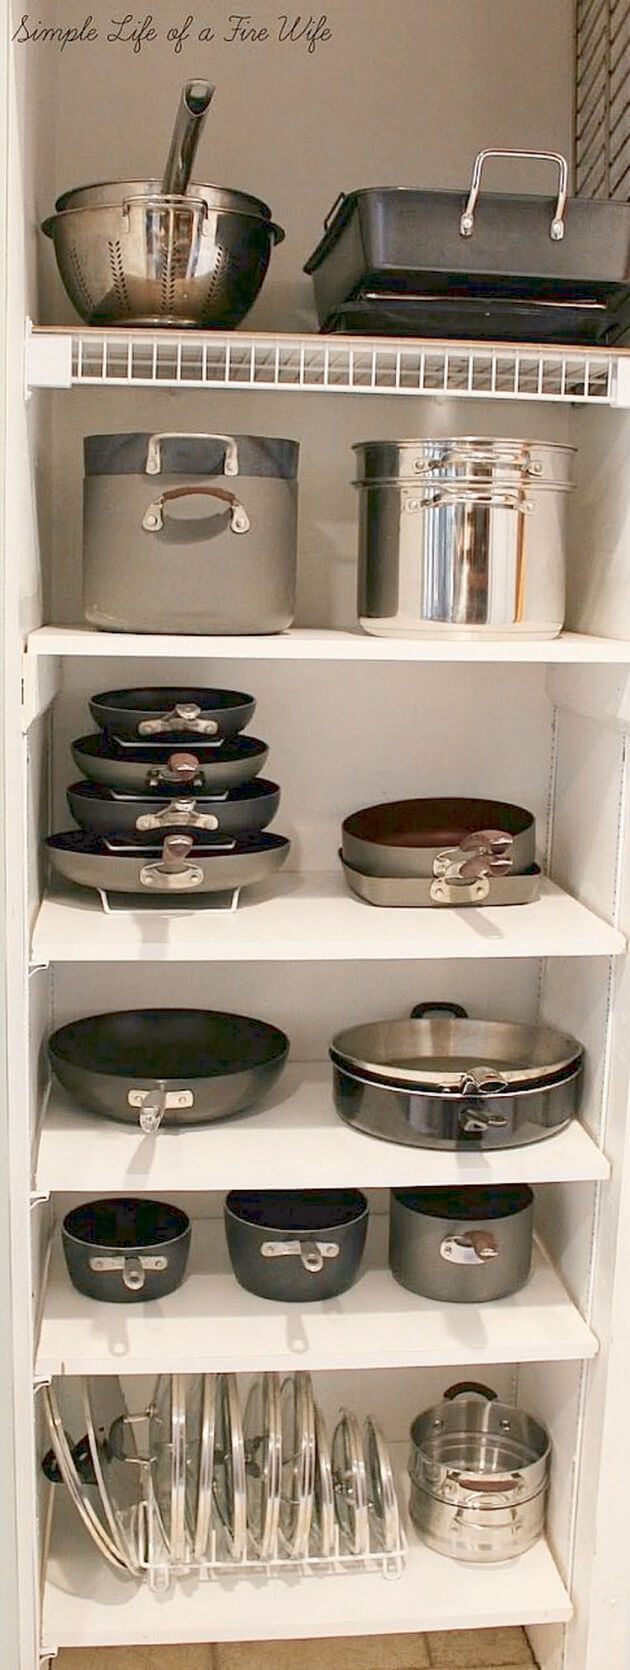 That stackable pot rack would be good for cast iron pans! A Storage Cabinet for Pots and Pans | Tiny Homes